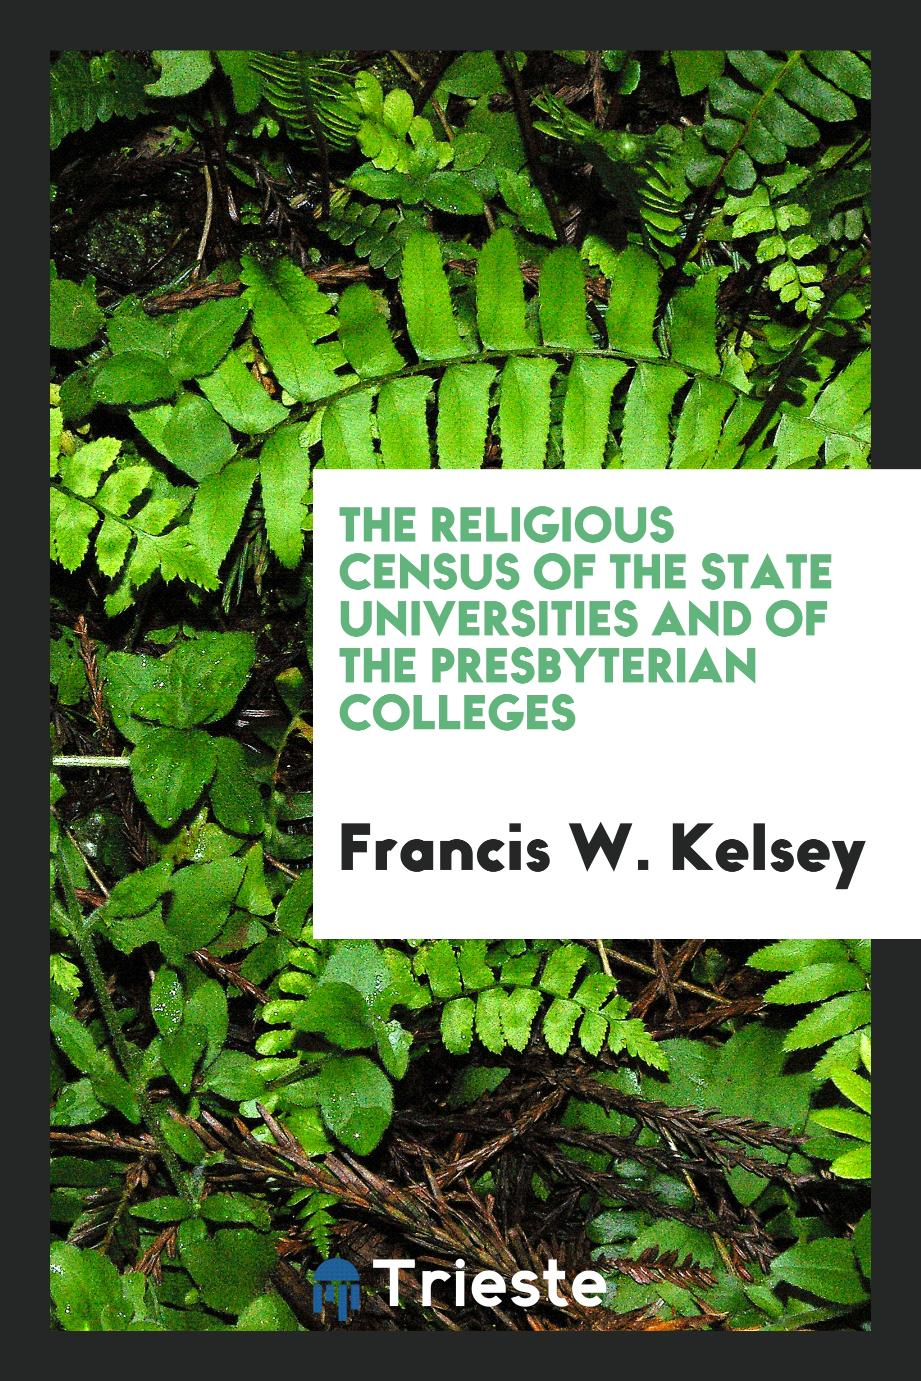 The Religious Census of the State Universities and of the Presbyterian Colleges